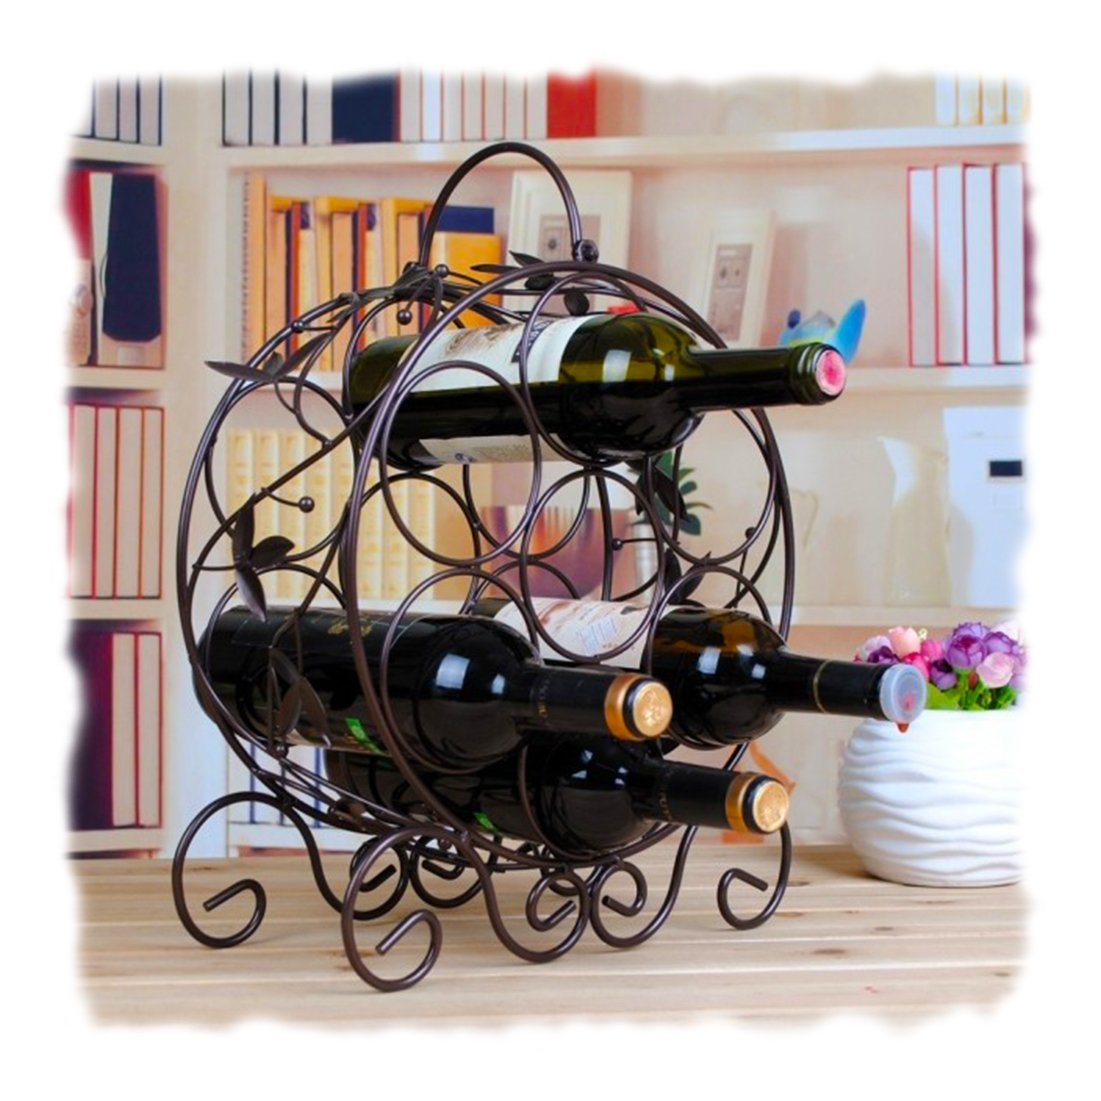 Cool Kitchen Stuff: Cool Kitchen Stuff: Decorative Metal Wine Racks For Your